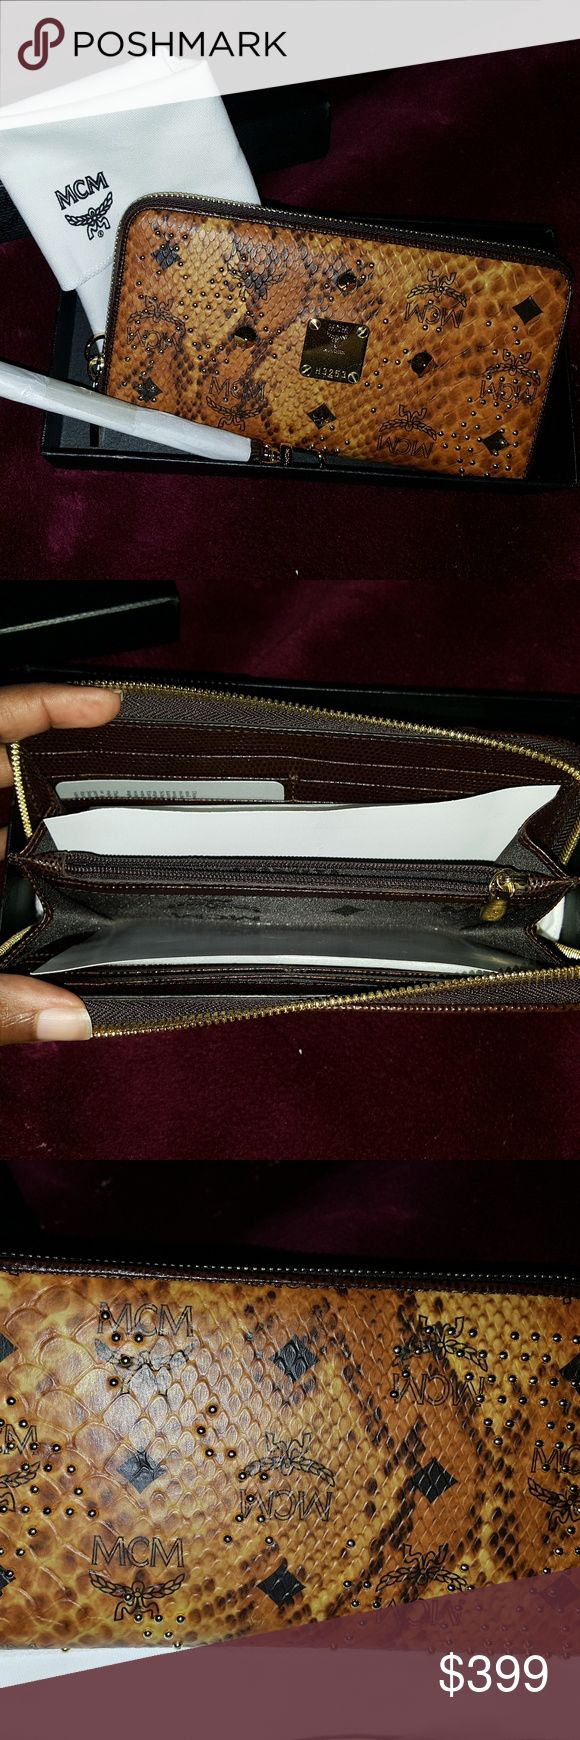 NVM studded zip around wallet Used. In excellent condition. Minor wear on the interior and exterior. Comes with box, dust bag, and unopened/unused wristlet that can be attached to the wallet. MCM Bags Wallets